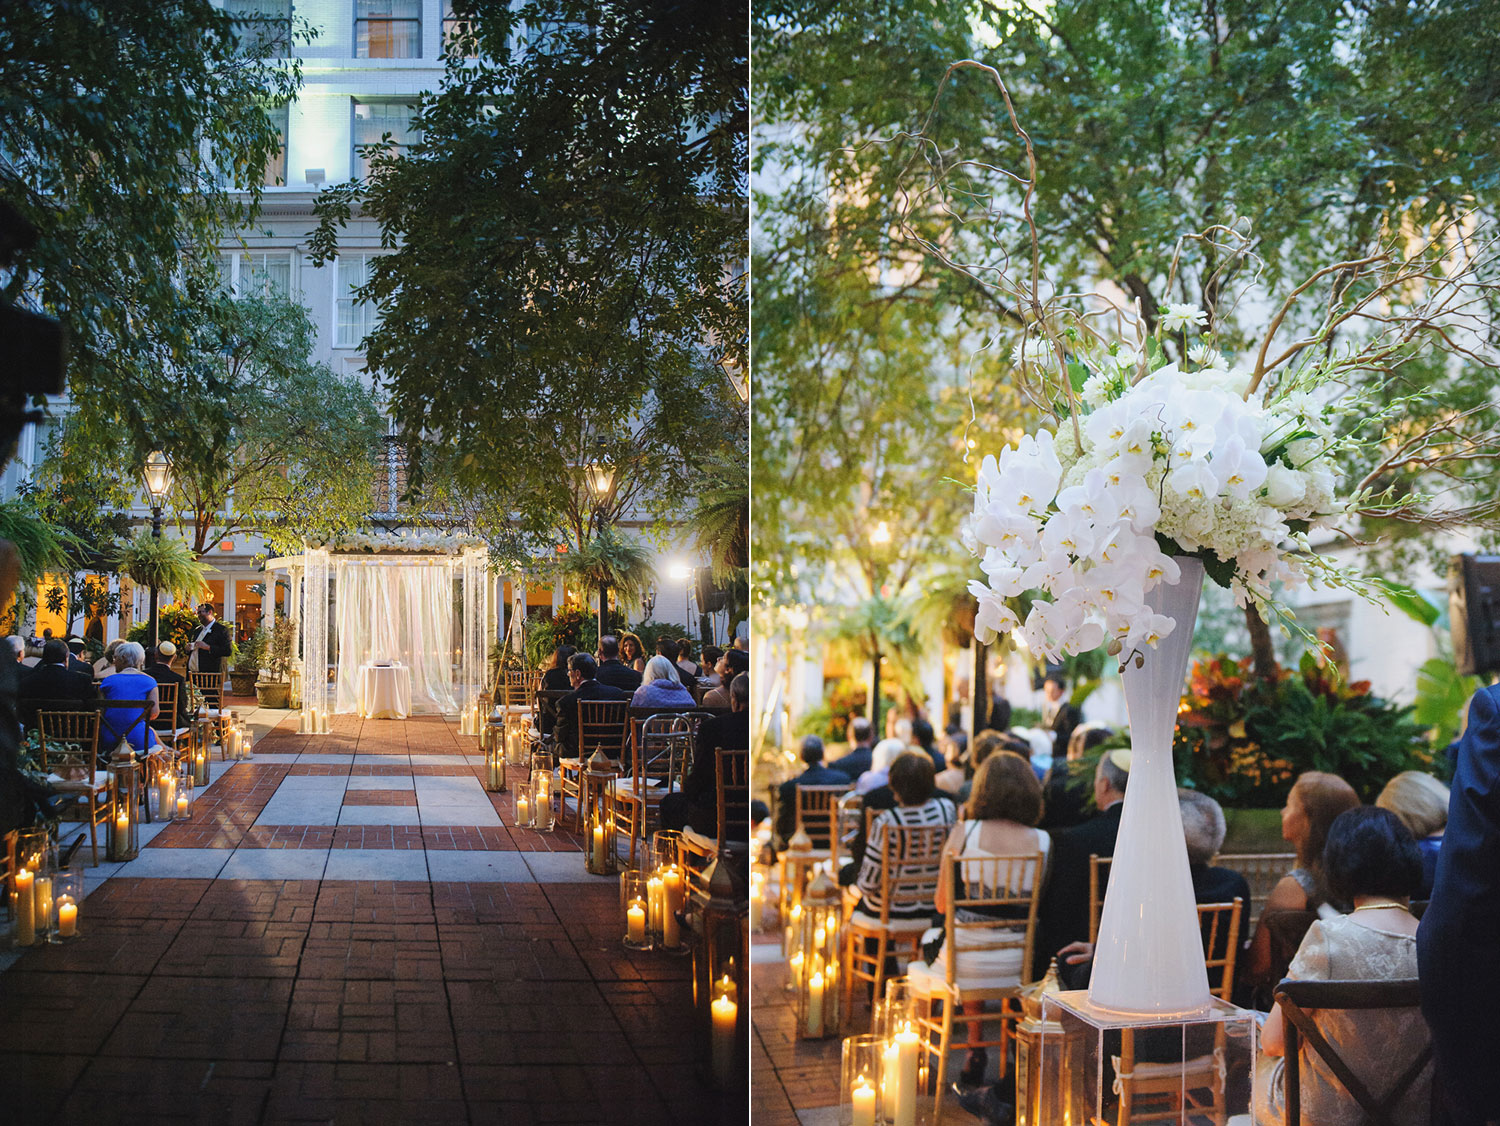 sapphireevents.com | New Orleans Wedding Planning and Design | Sapphire Events | Greer G Photography | Ritz Carlton Wedding